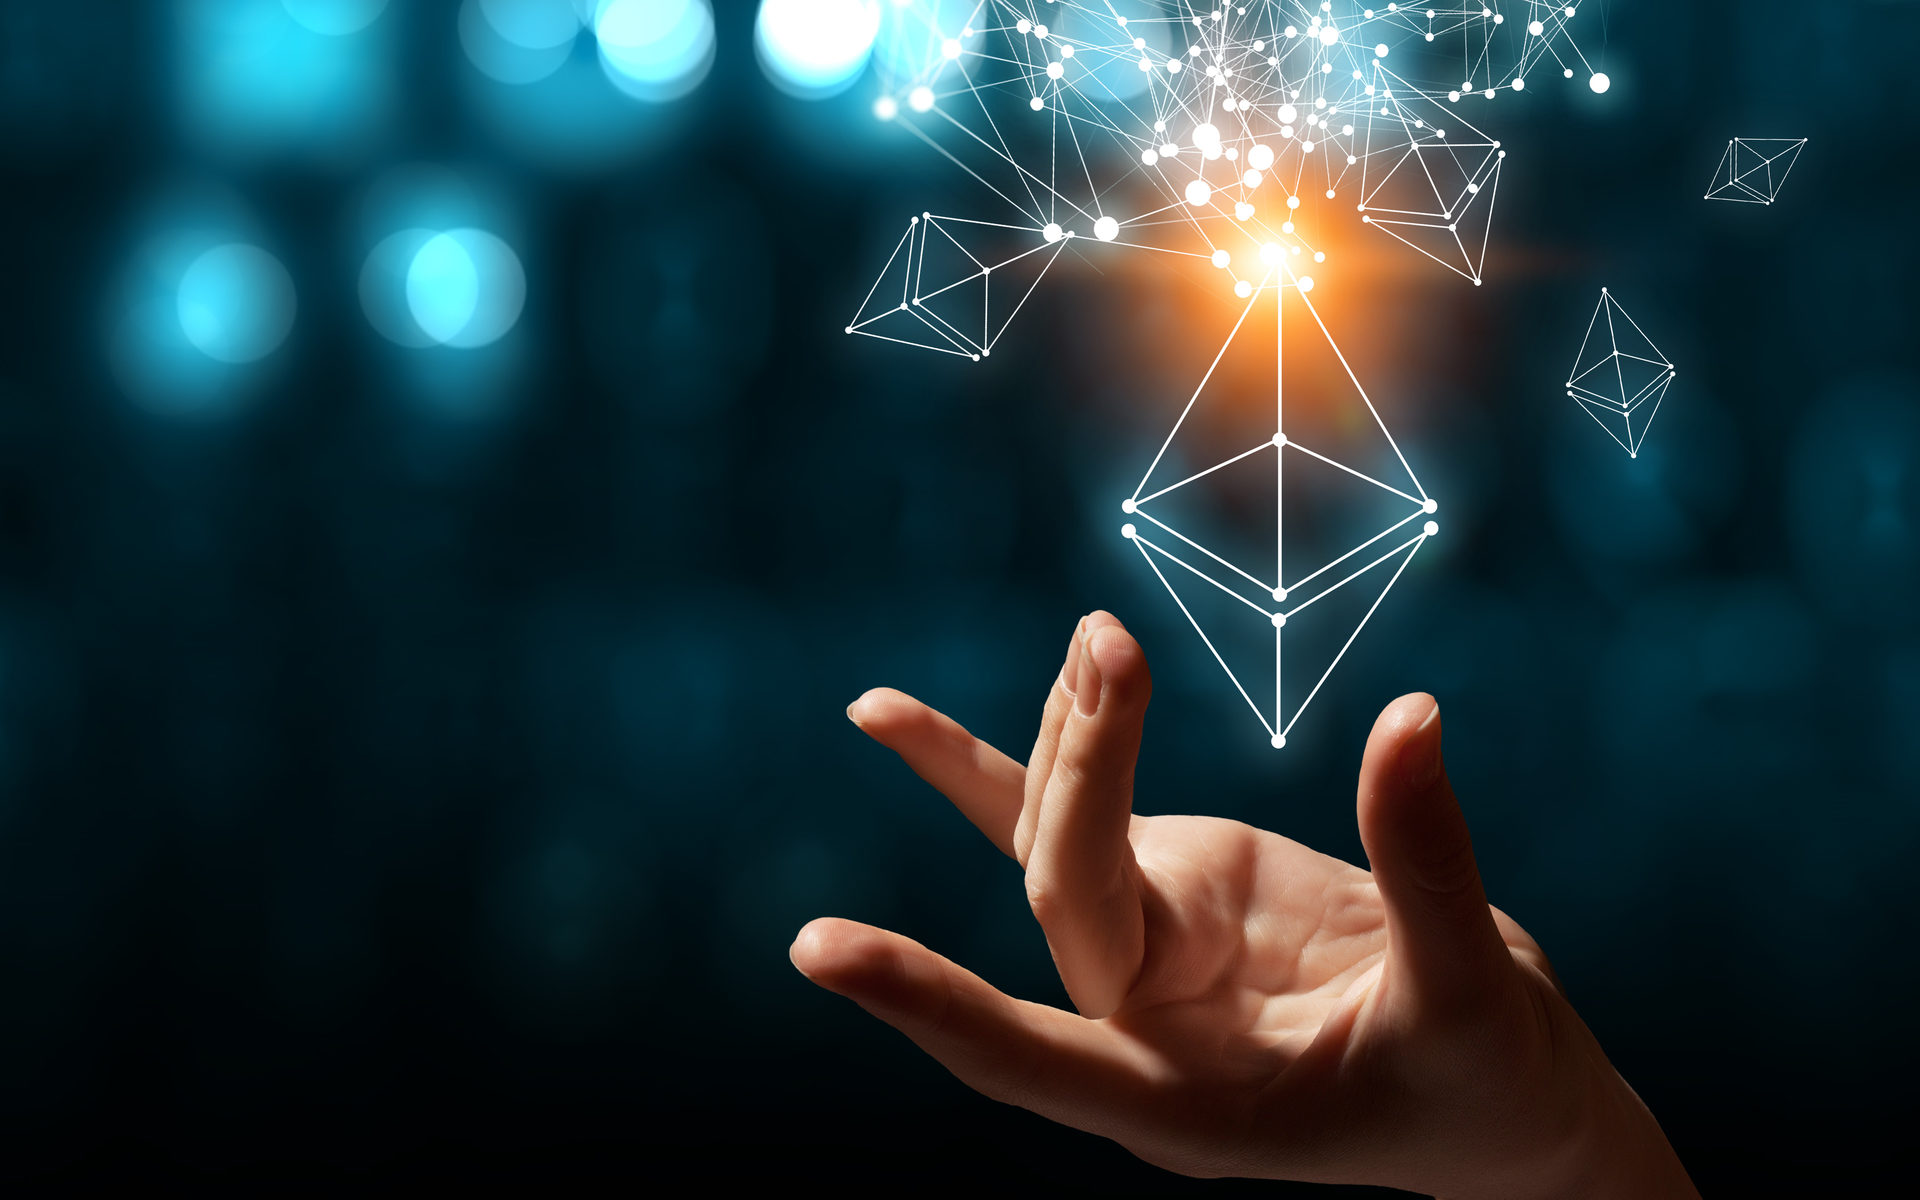 Ethereum still not ready for DeFi, say some critics